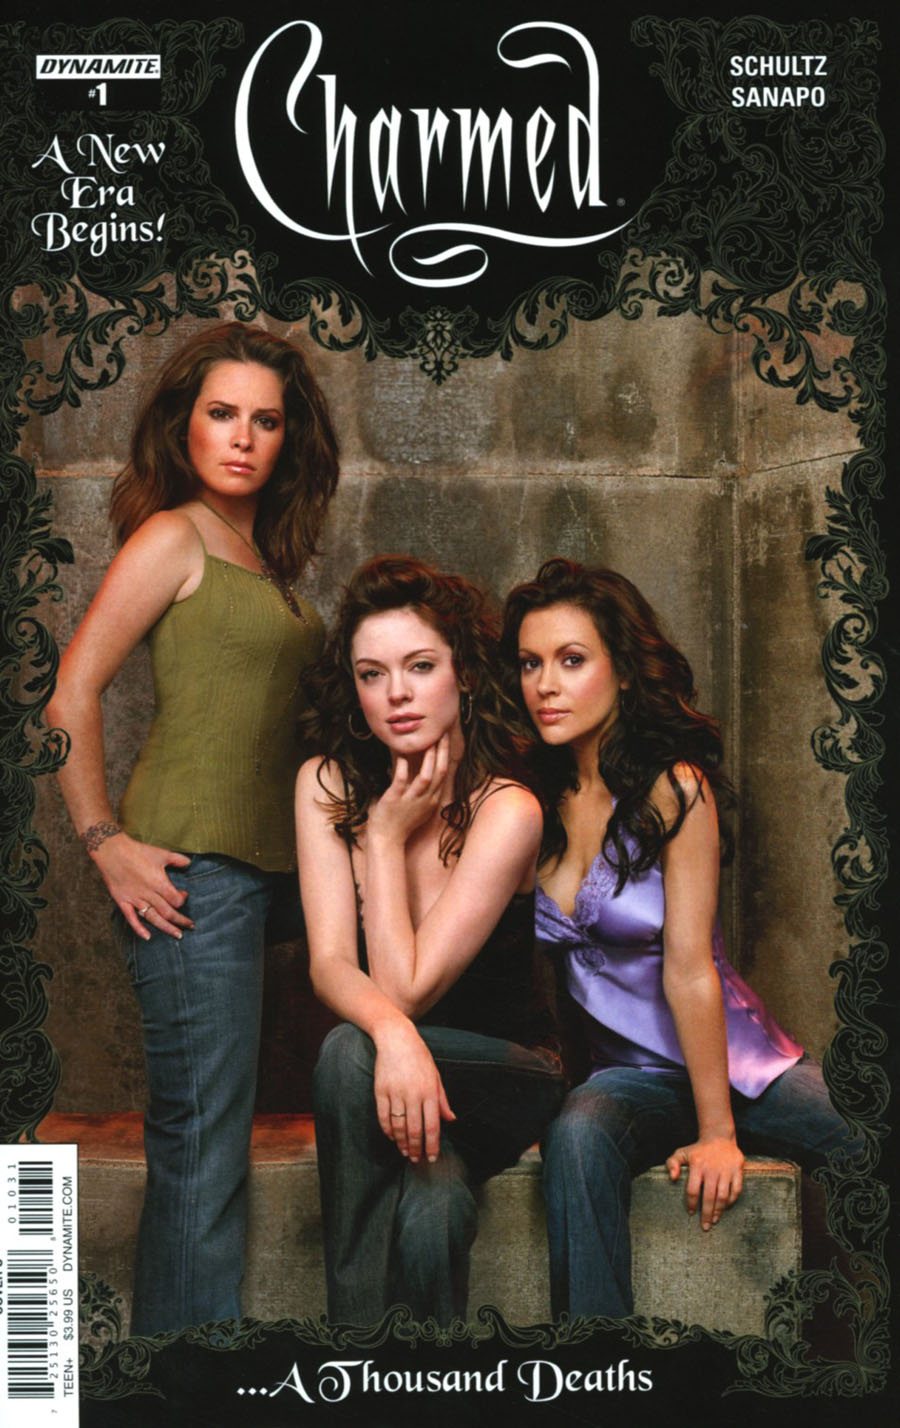 Charmed Vol 2 #1 Cover C Variant Group Photo Cover